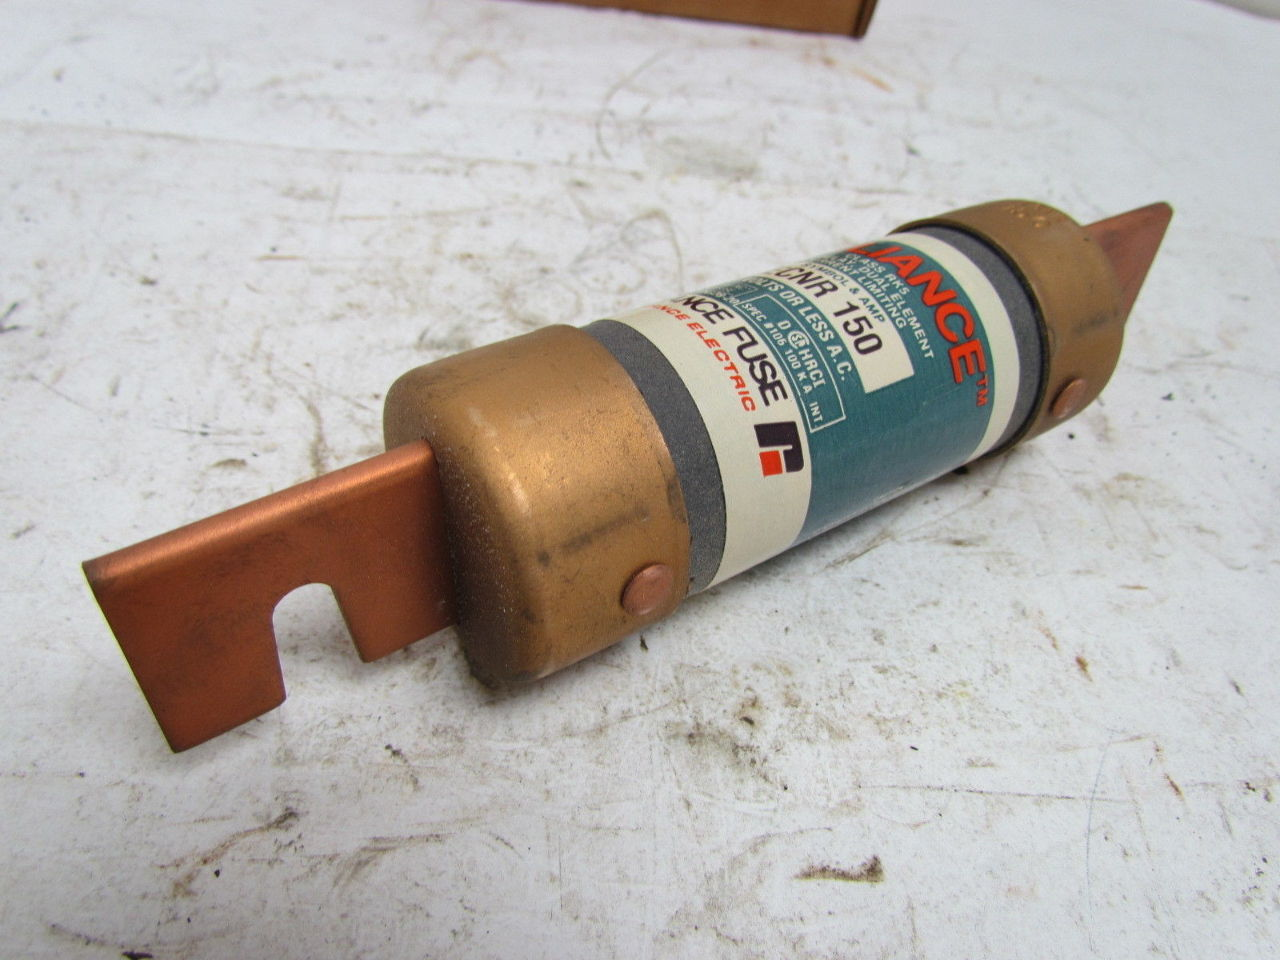 800 Amp 250 Volt Fuse 800 Free Engine Image For User